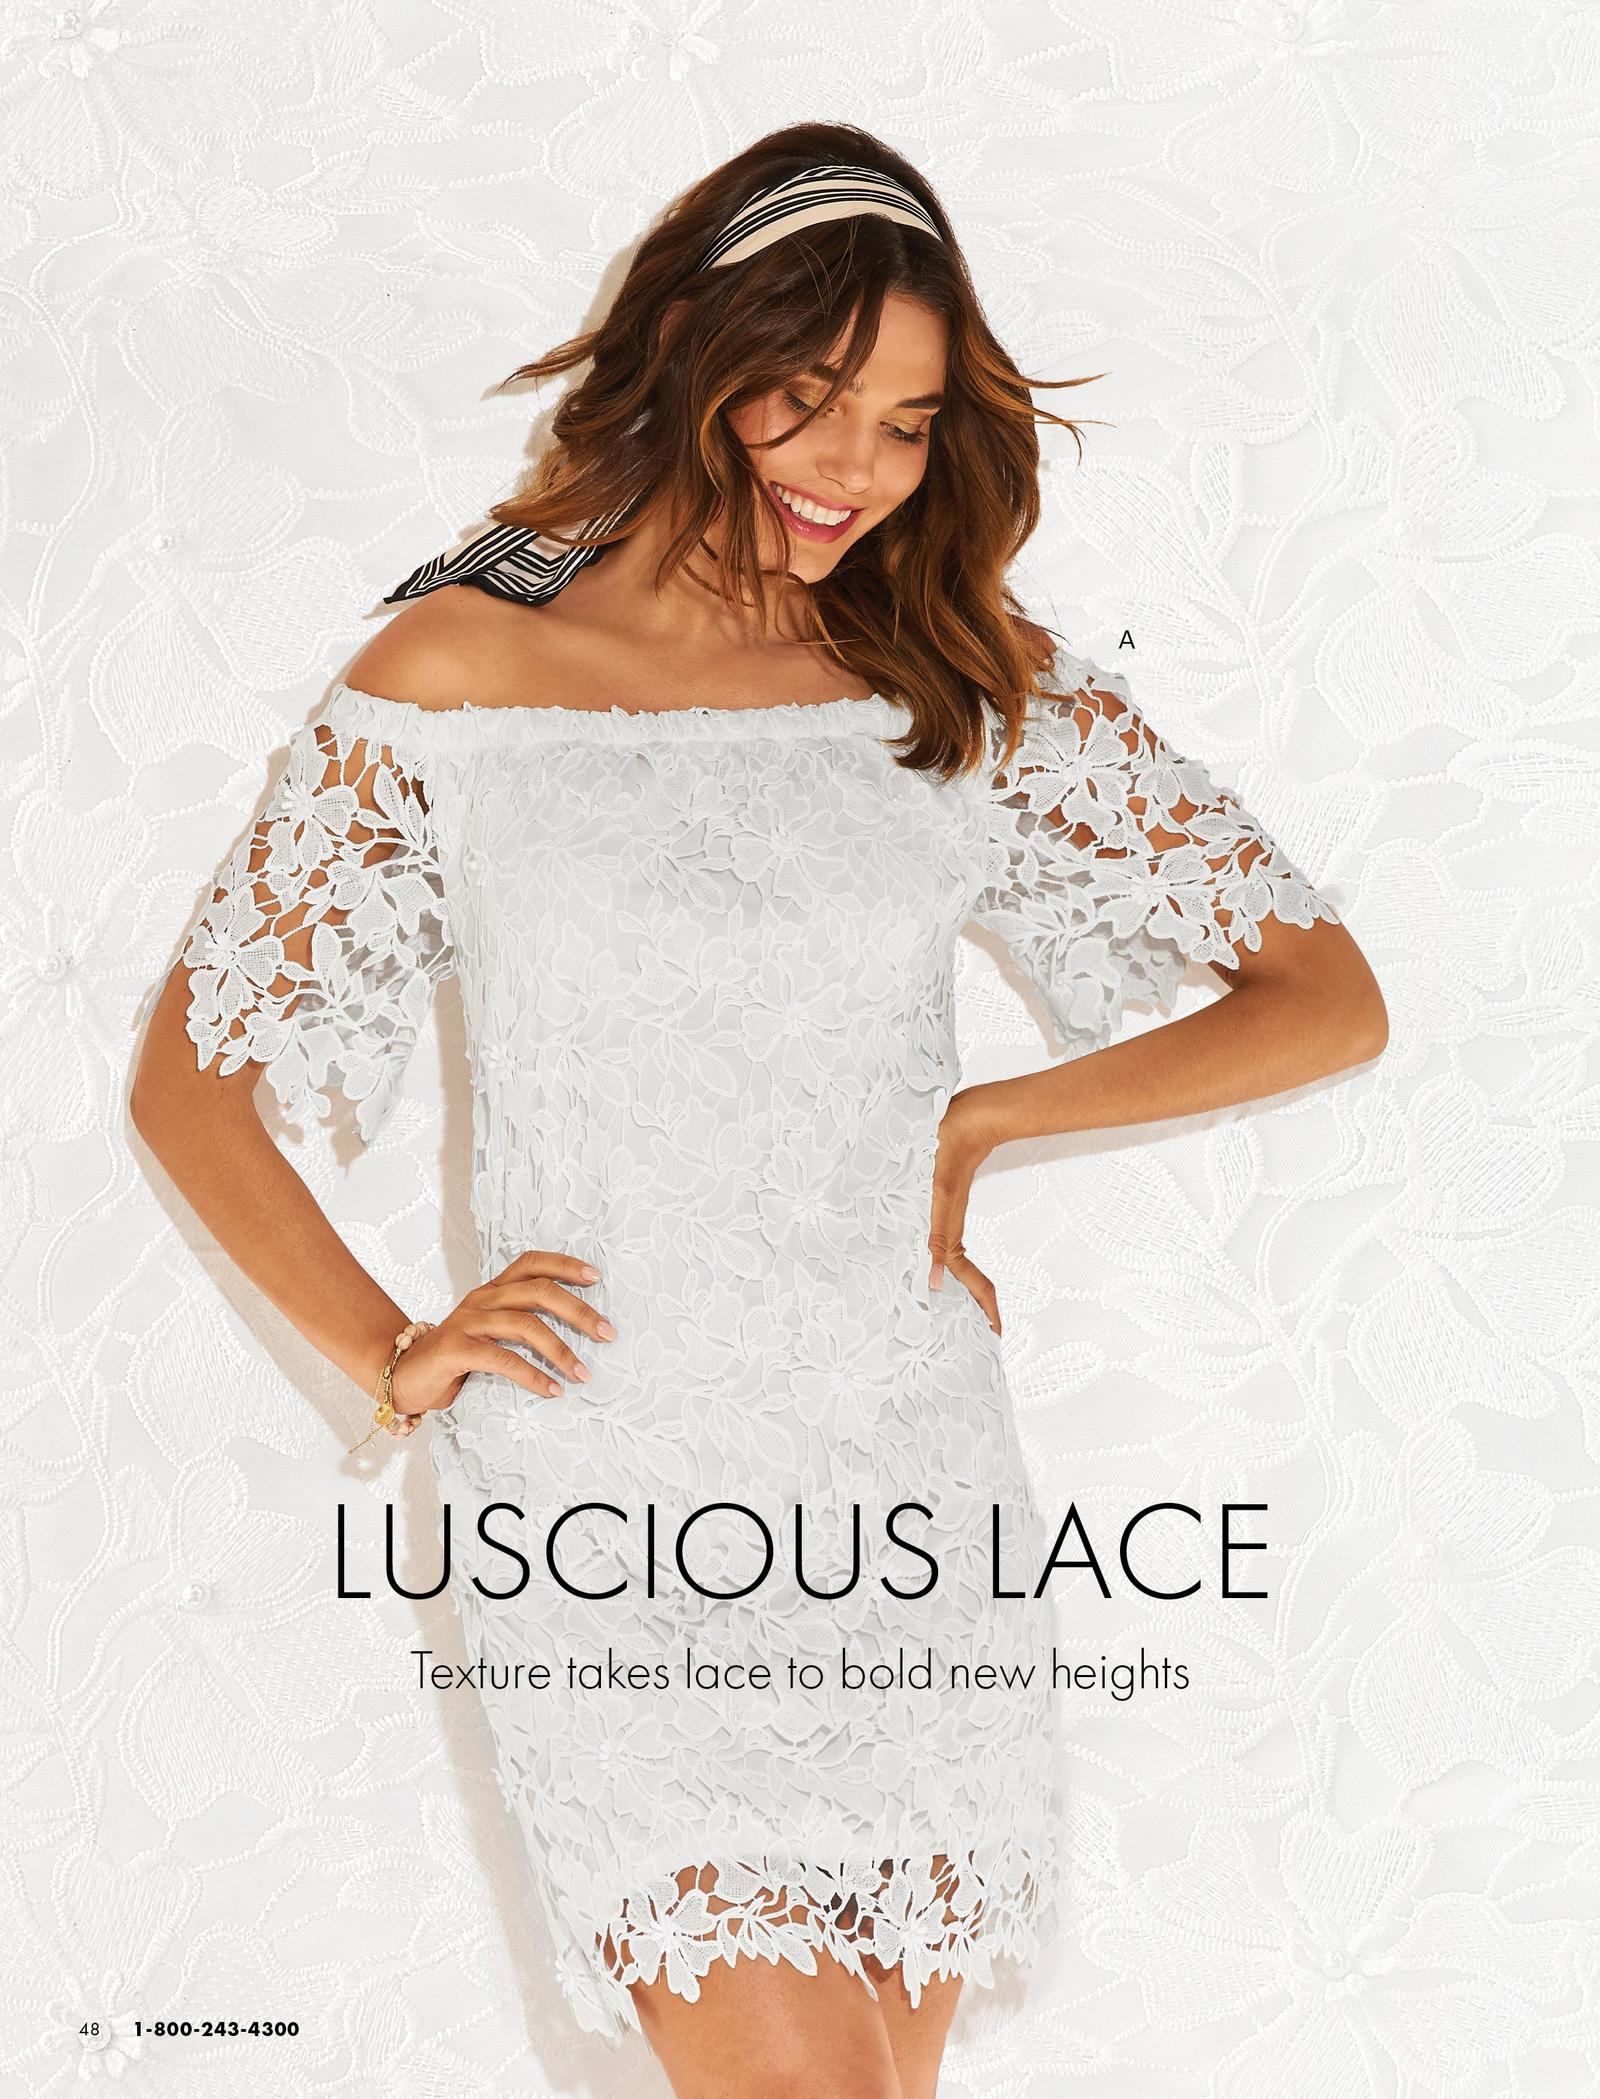 model wearing a white lace off-the-shoulder dress.